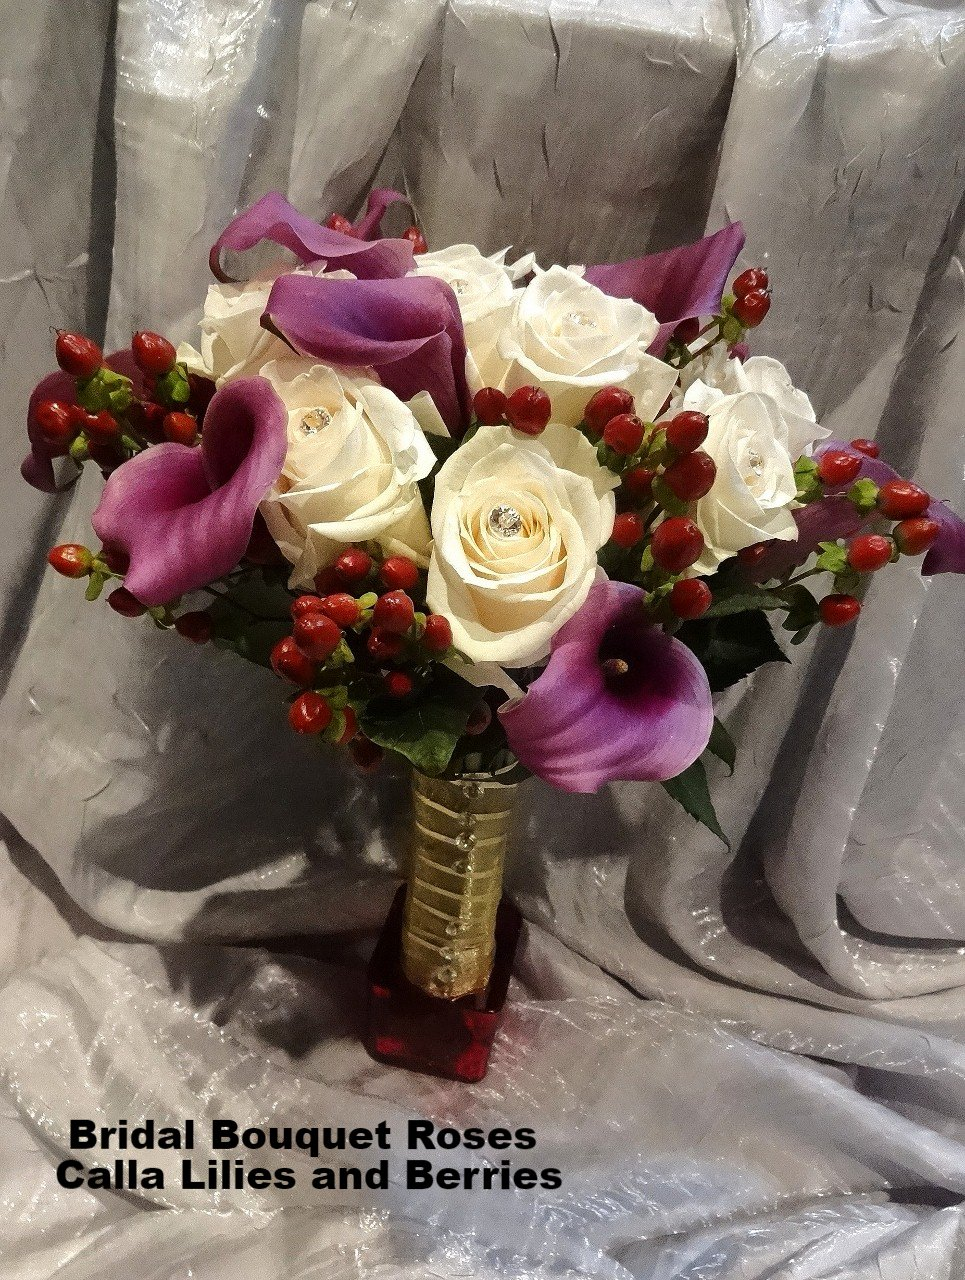 Bridal Bouquet Roses /Calla Lilies /Berries